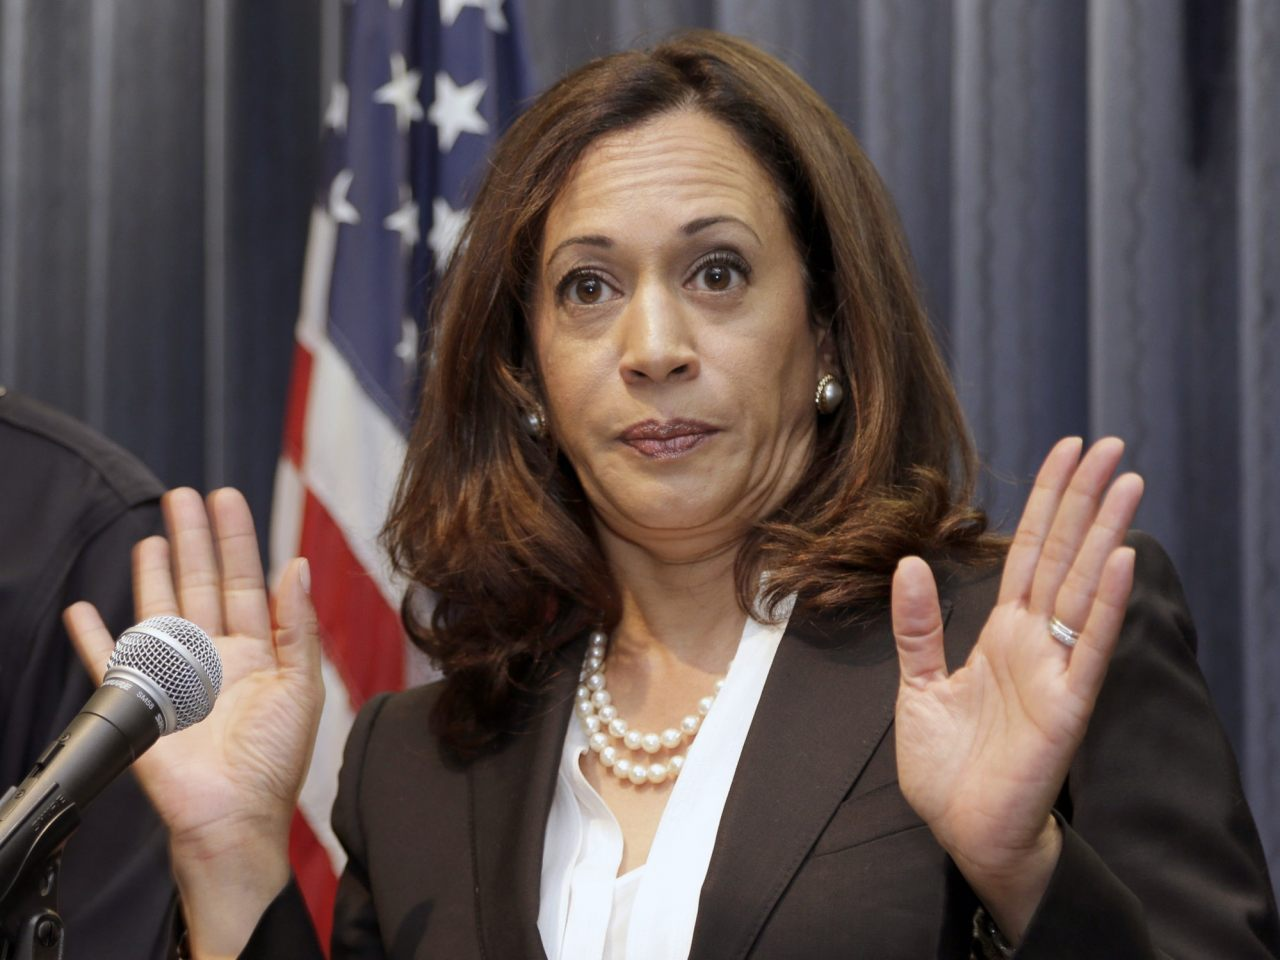 """Image: Kamala Harris praises the rioting and looting, calls it """"marching"""" and states she has """"great optimism"""""""